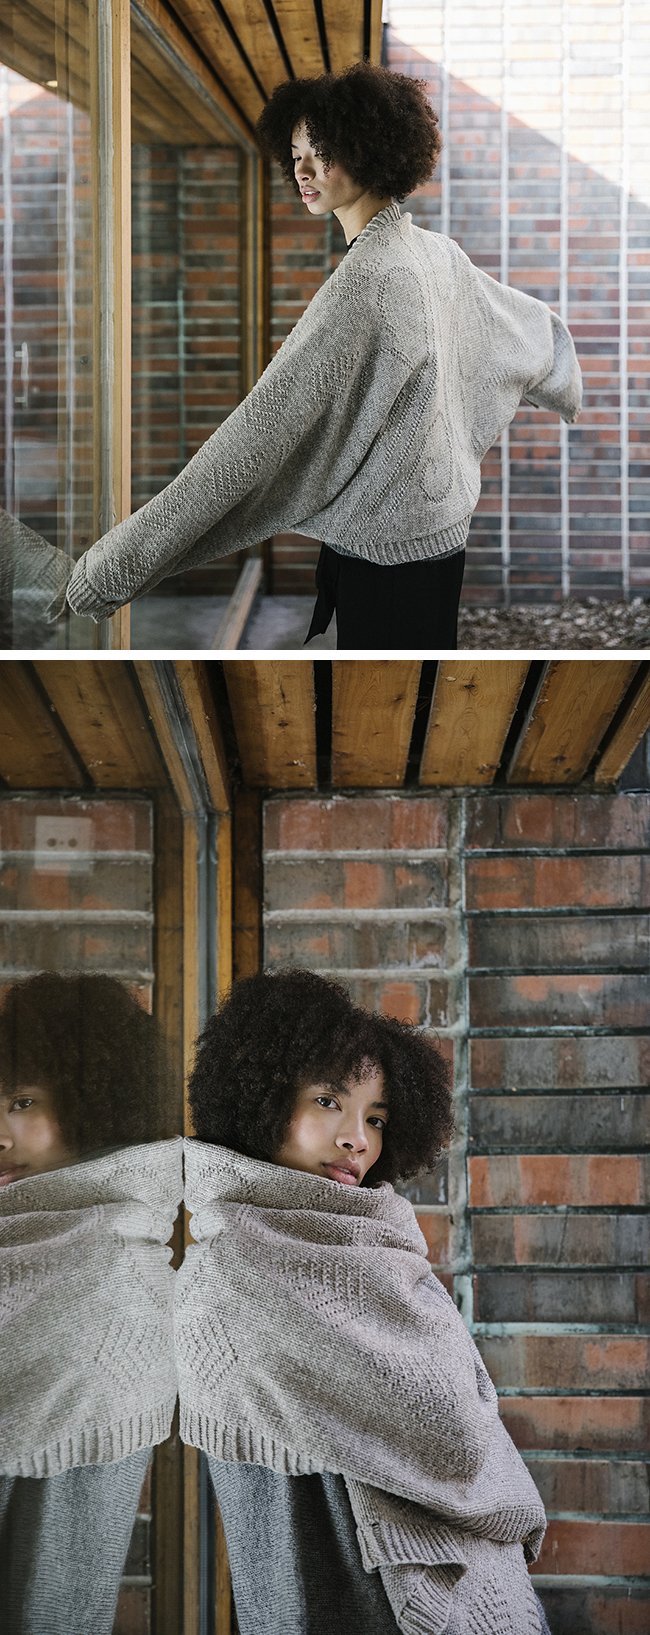 New Favorites: Pasvik knitting pattern by Julie Knits in Paris